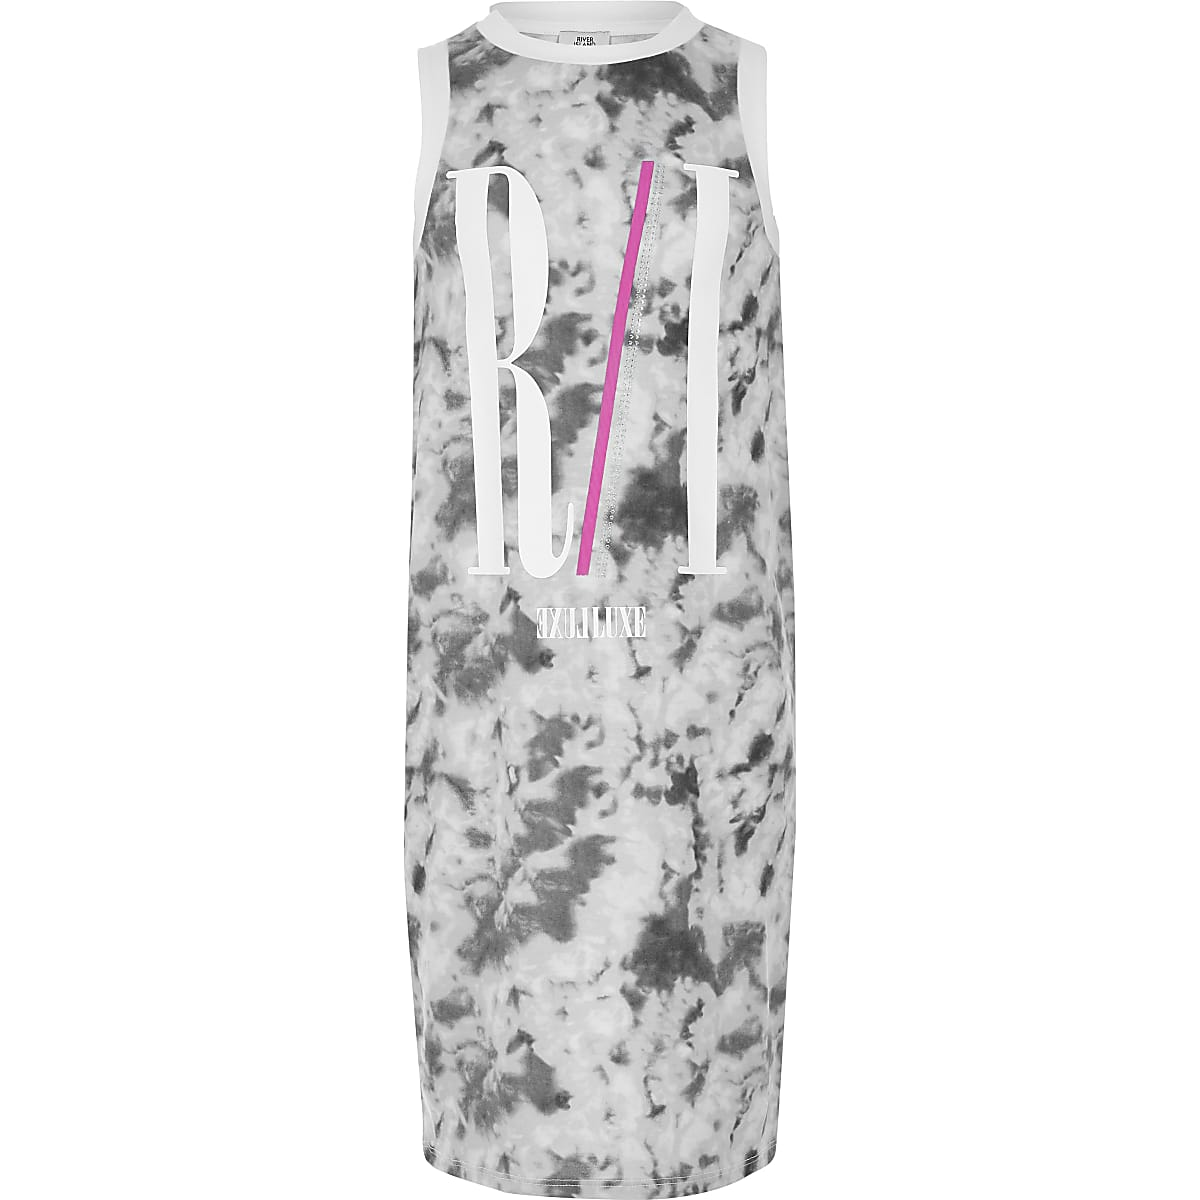 Girls grey RI tie dye dress